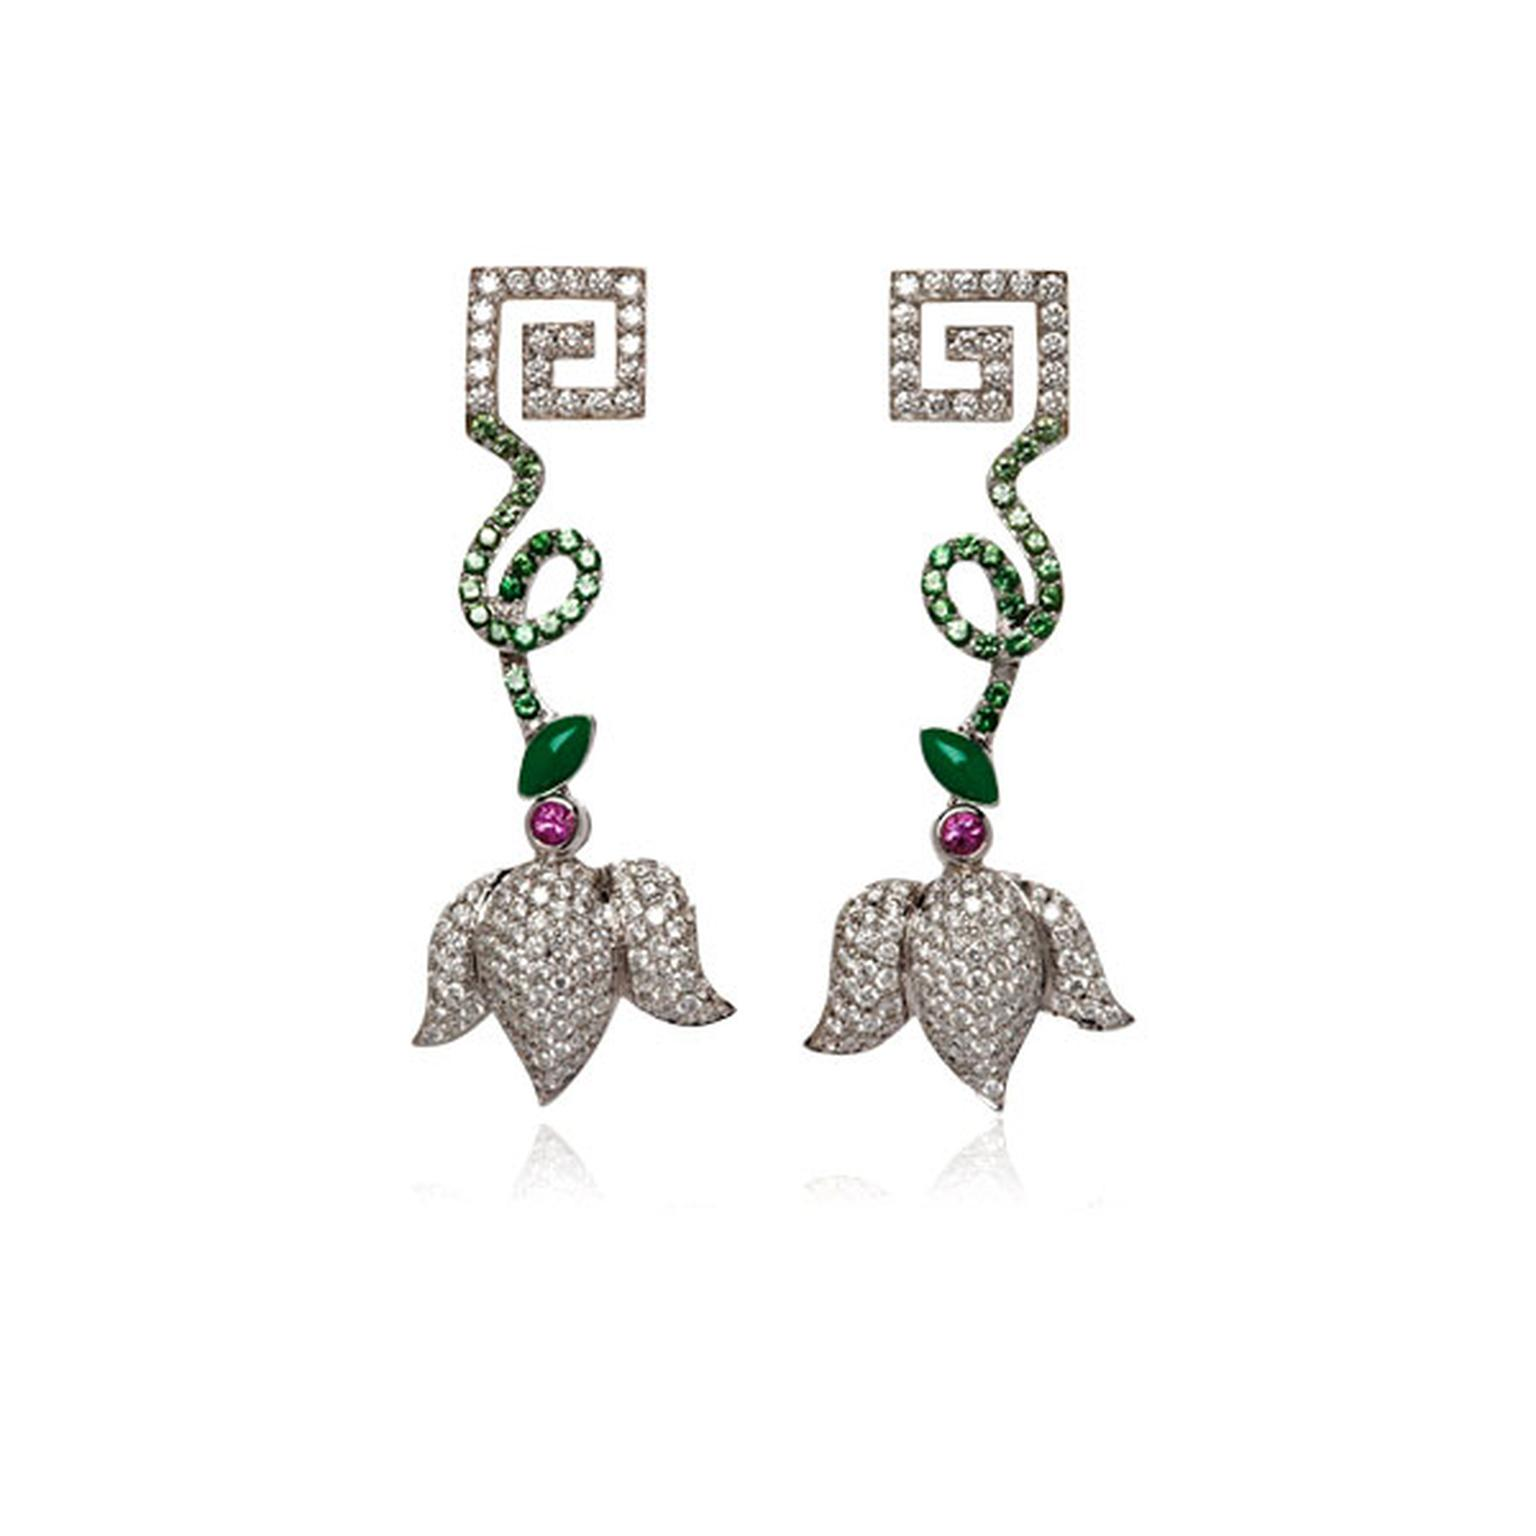 Stenmark green tsavorite earrings